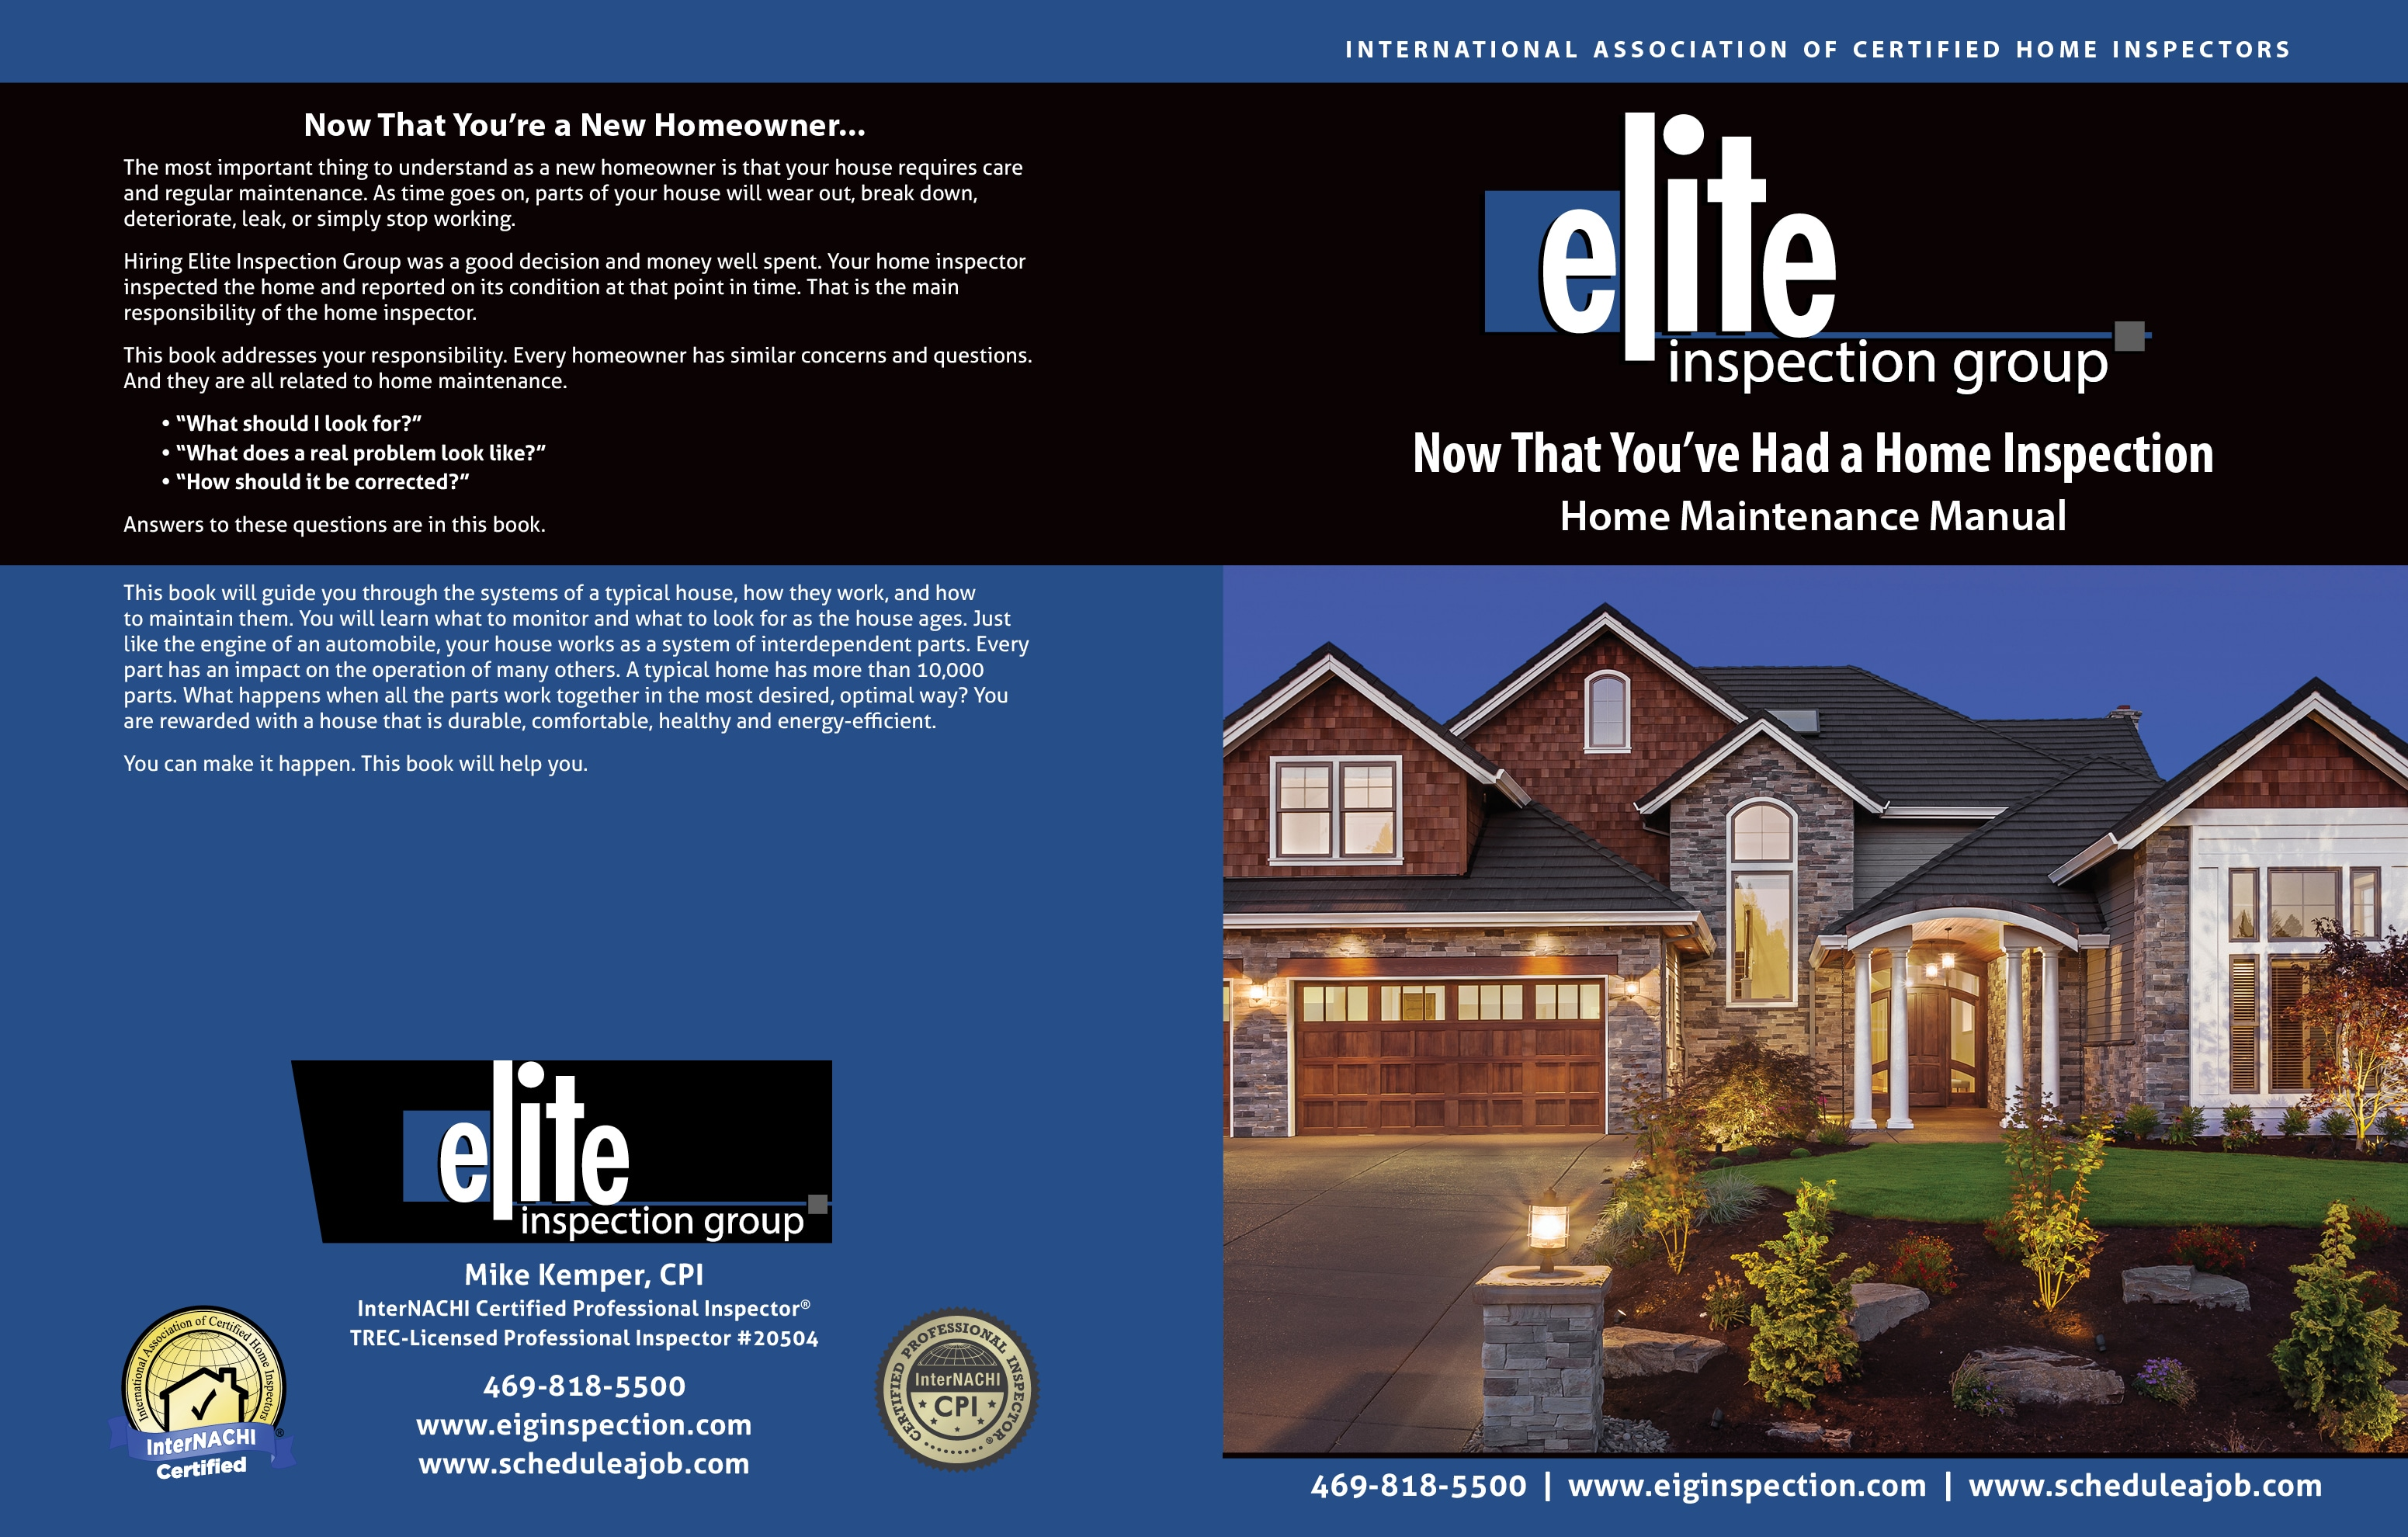 Custom Home Maintenance Book for Elite Inspection Group